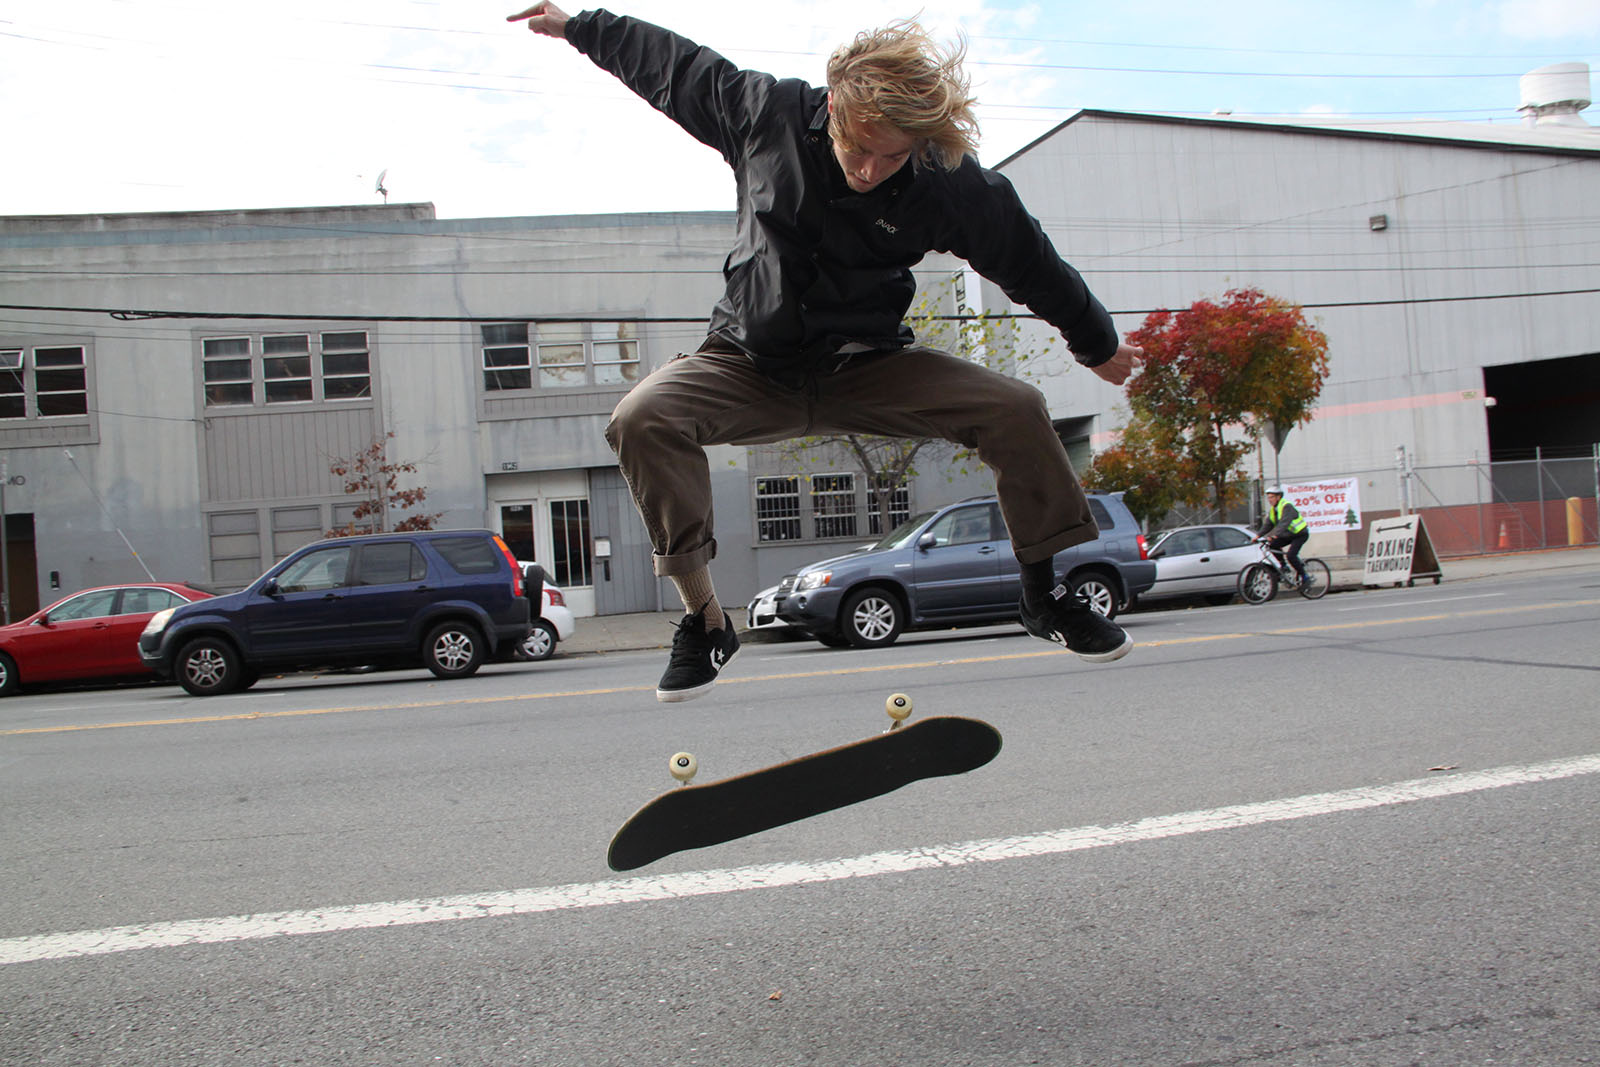 Man skates in the Mission.